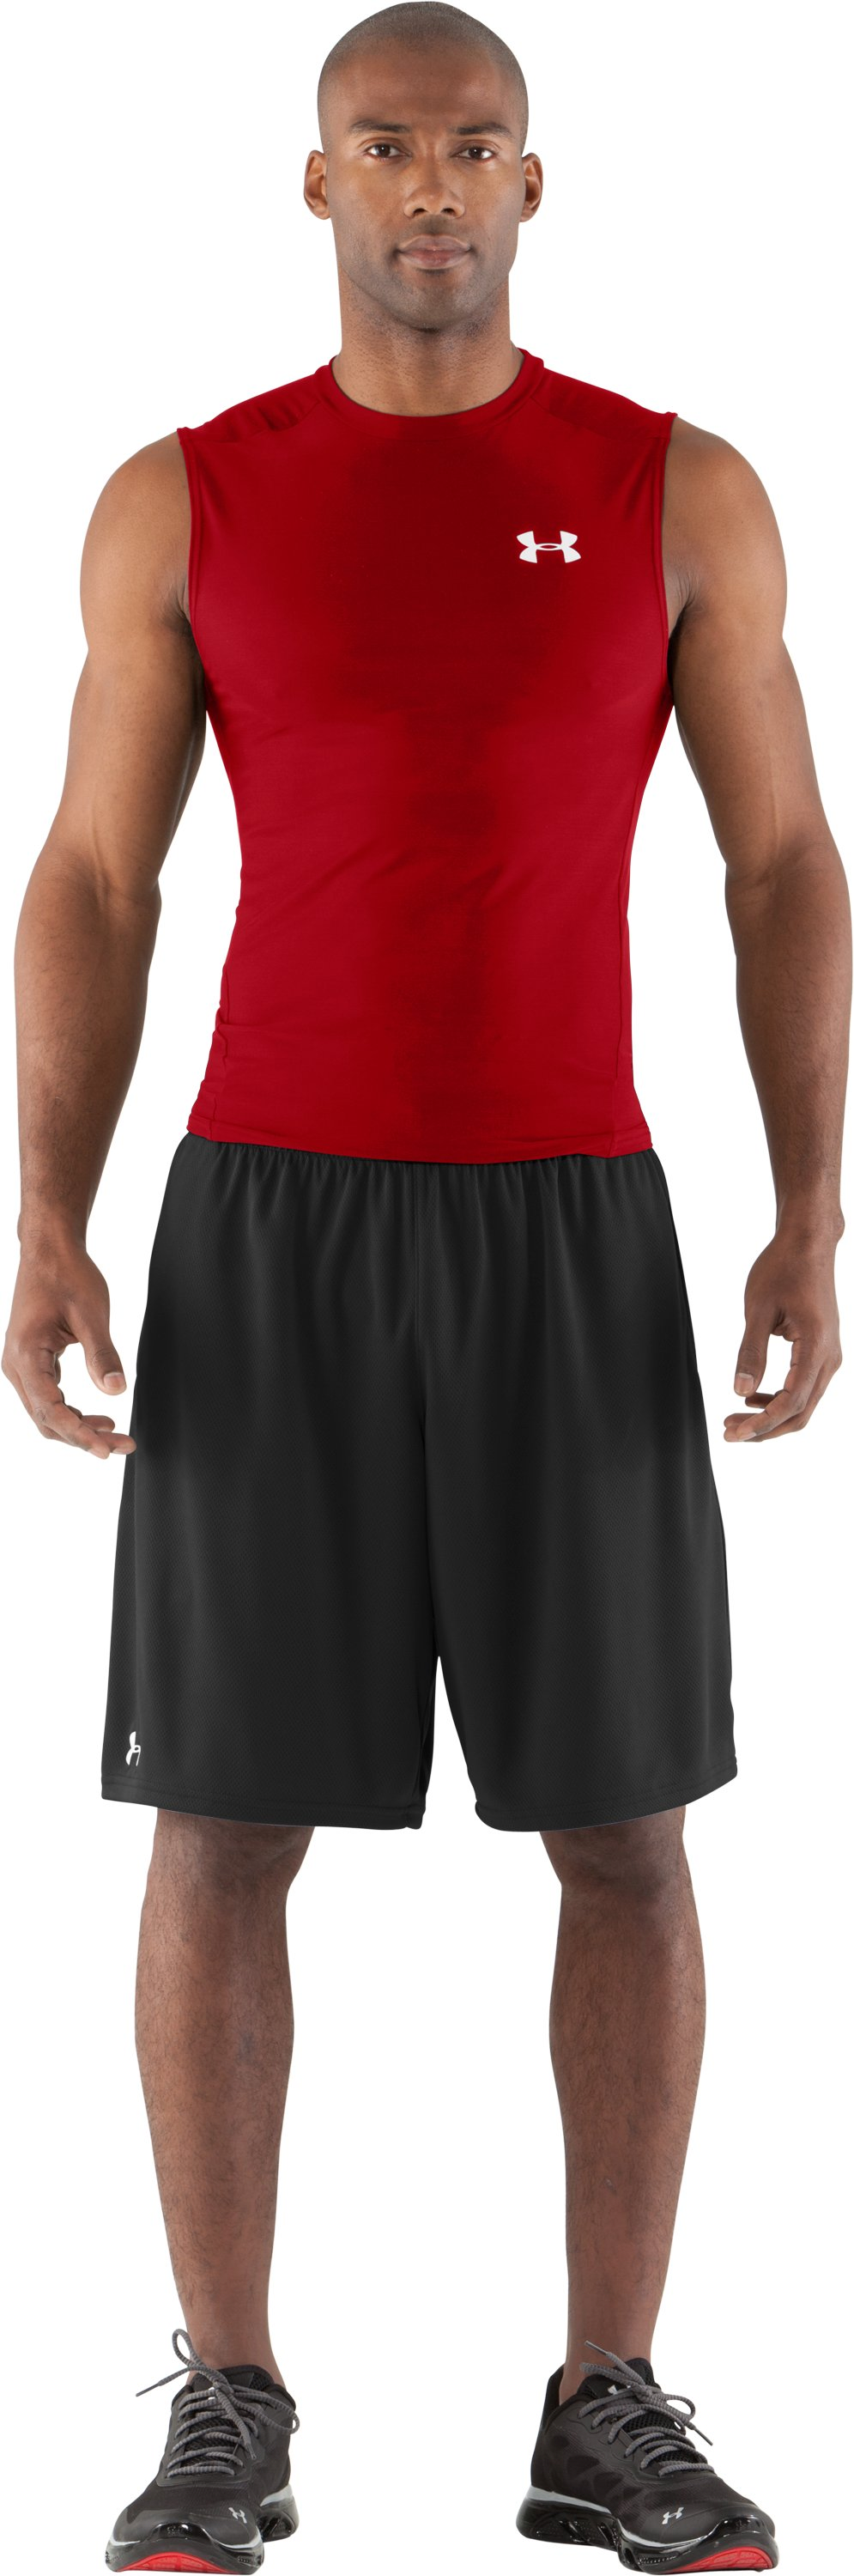 Men's HeatGear® Compression Sleeveless T-Shirt, Red